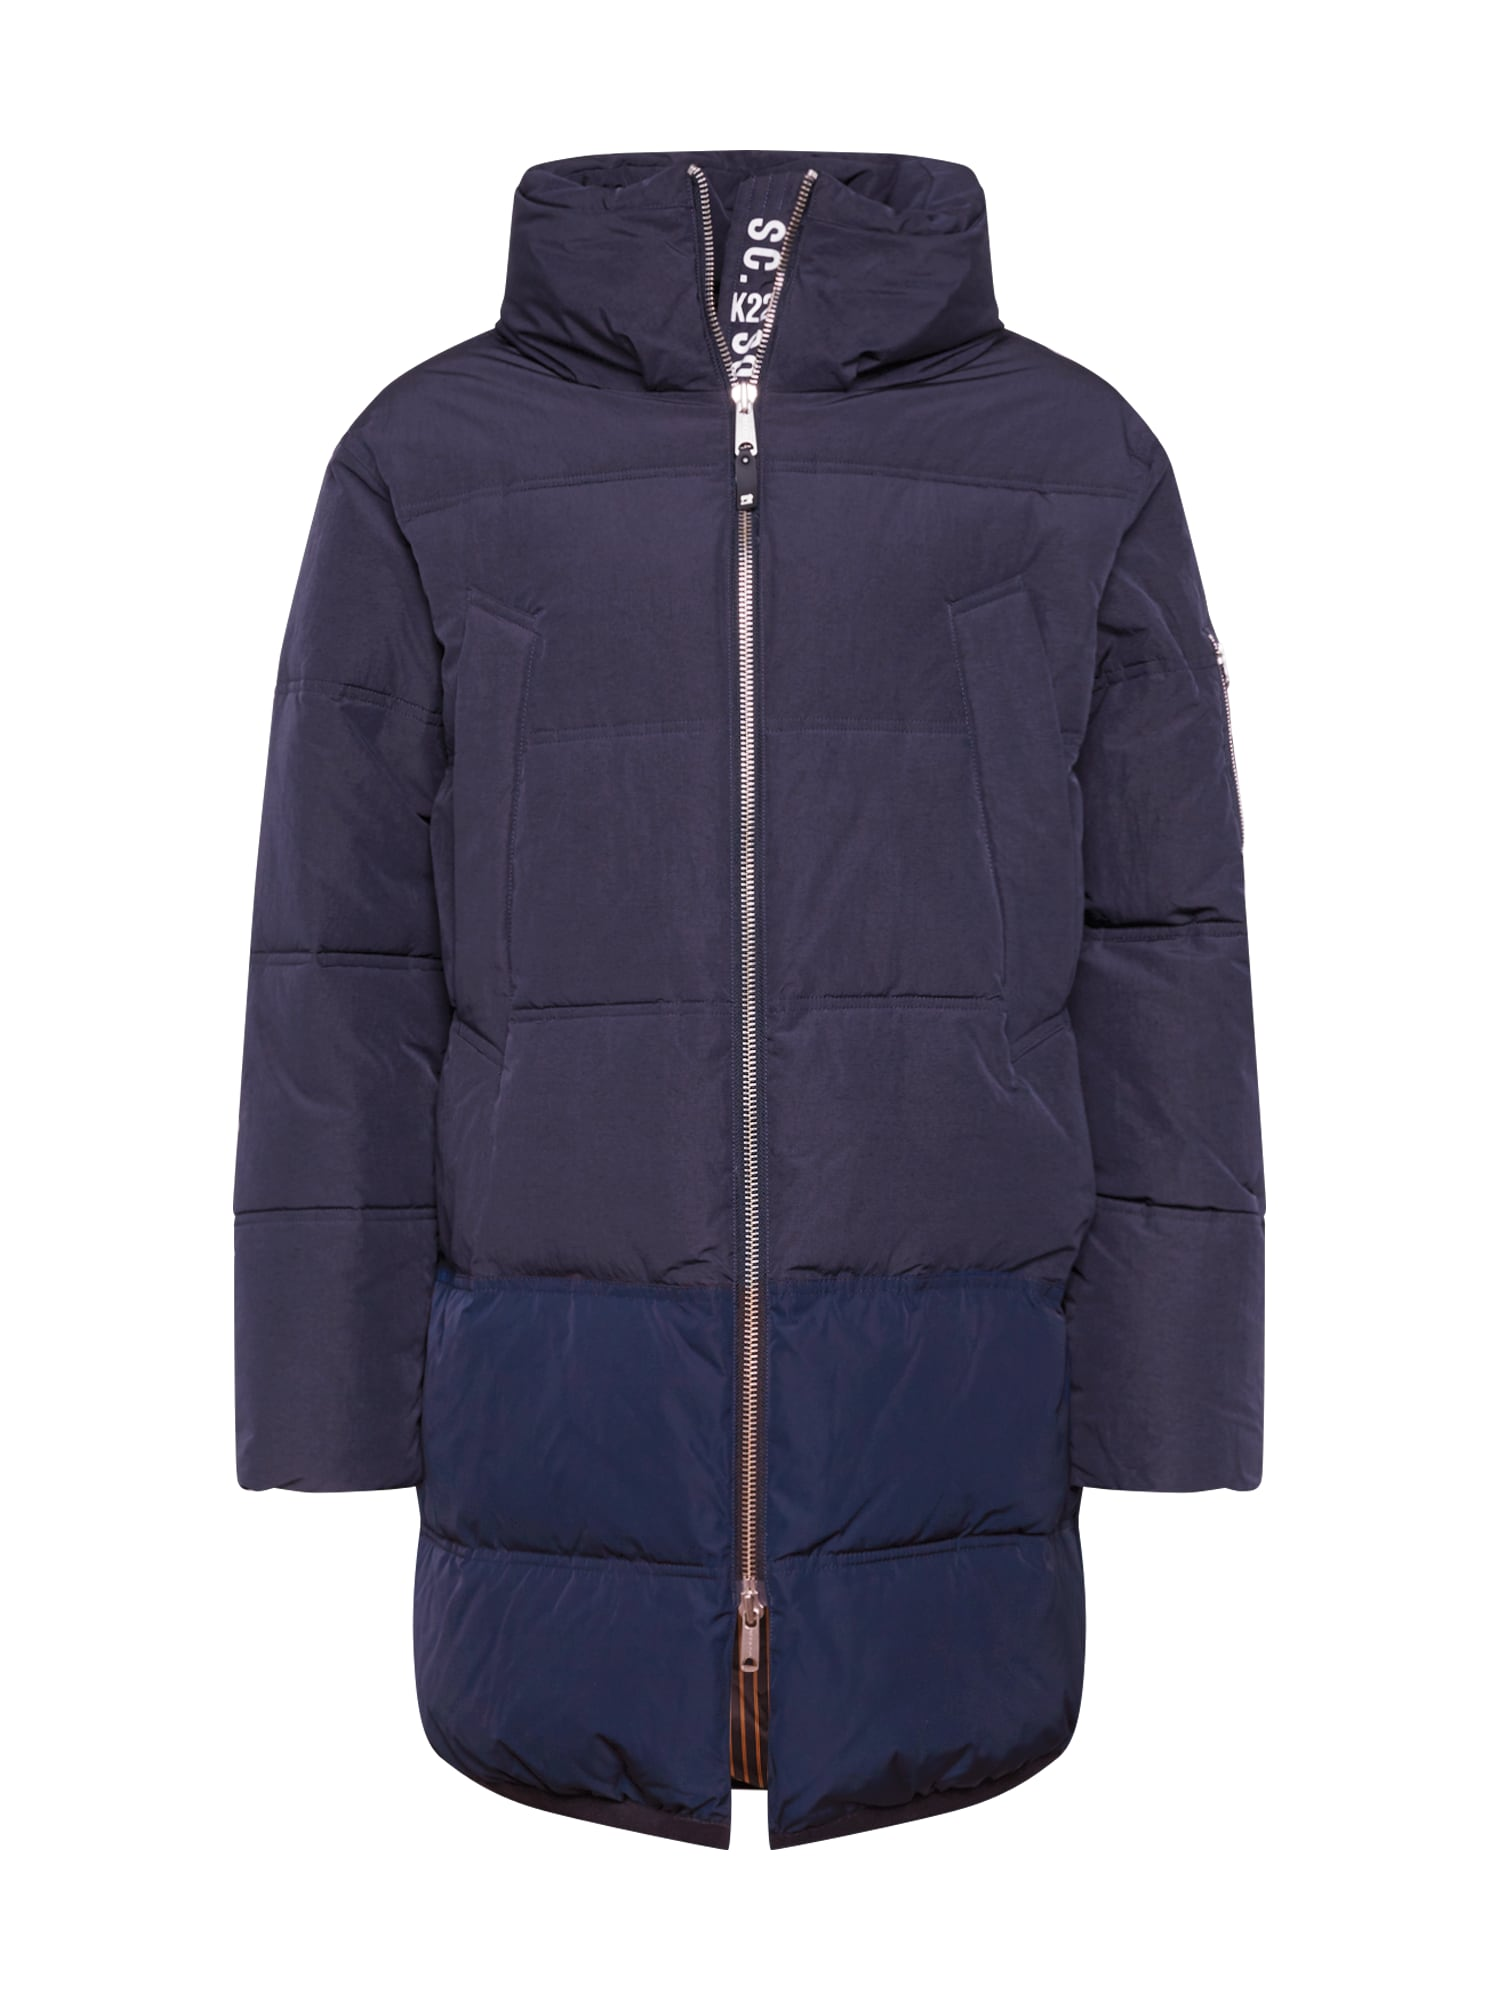 SCOTCH & SODA Žieminis paltas 'Long quilted down jacket' nakties mėlyna